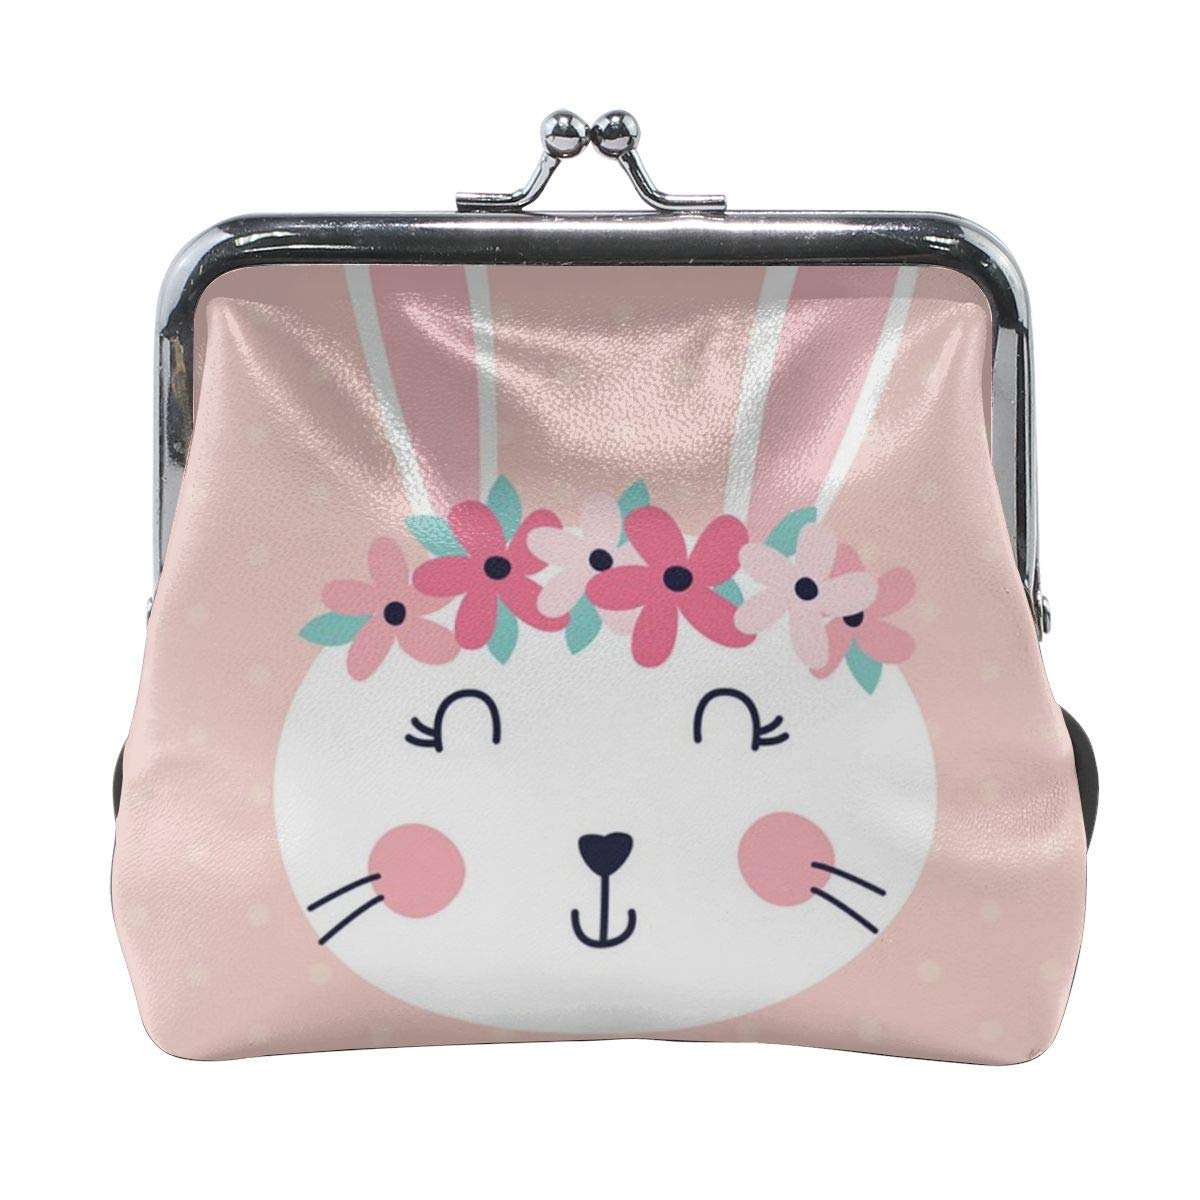 Girl Kiss And Buckle Change Purse Ladys HandbagPink Bunny Happy Easter Personality Metal Lock Purse Architd Customized Cute Retro Coin Purse